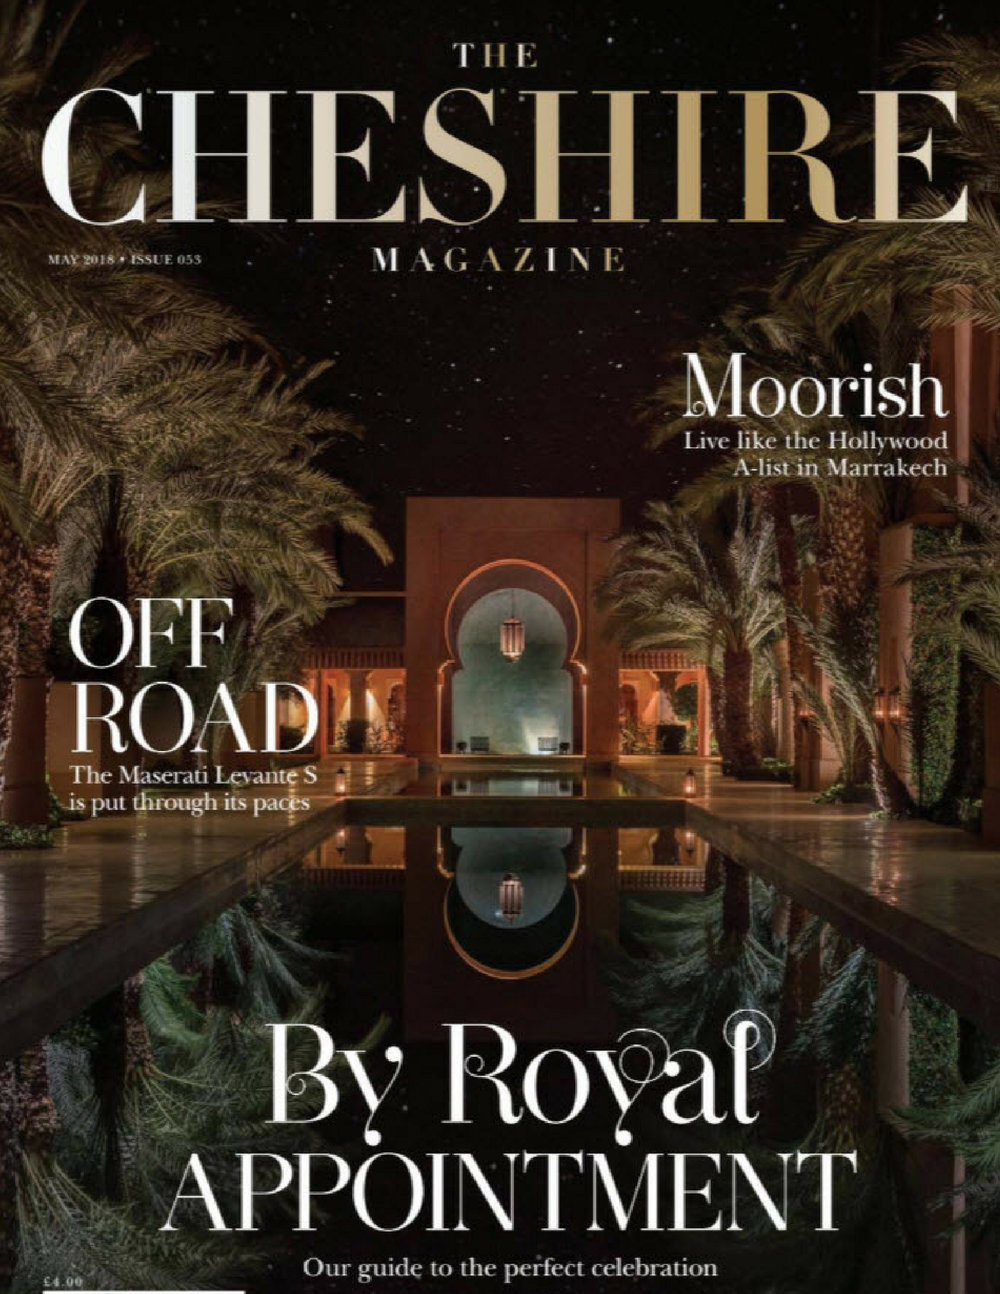 The Cheshire Magazine.jpg